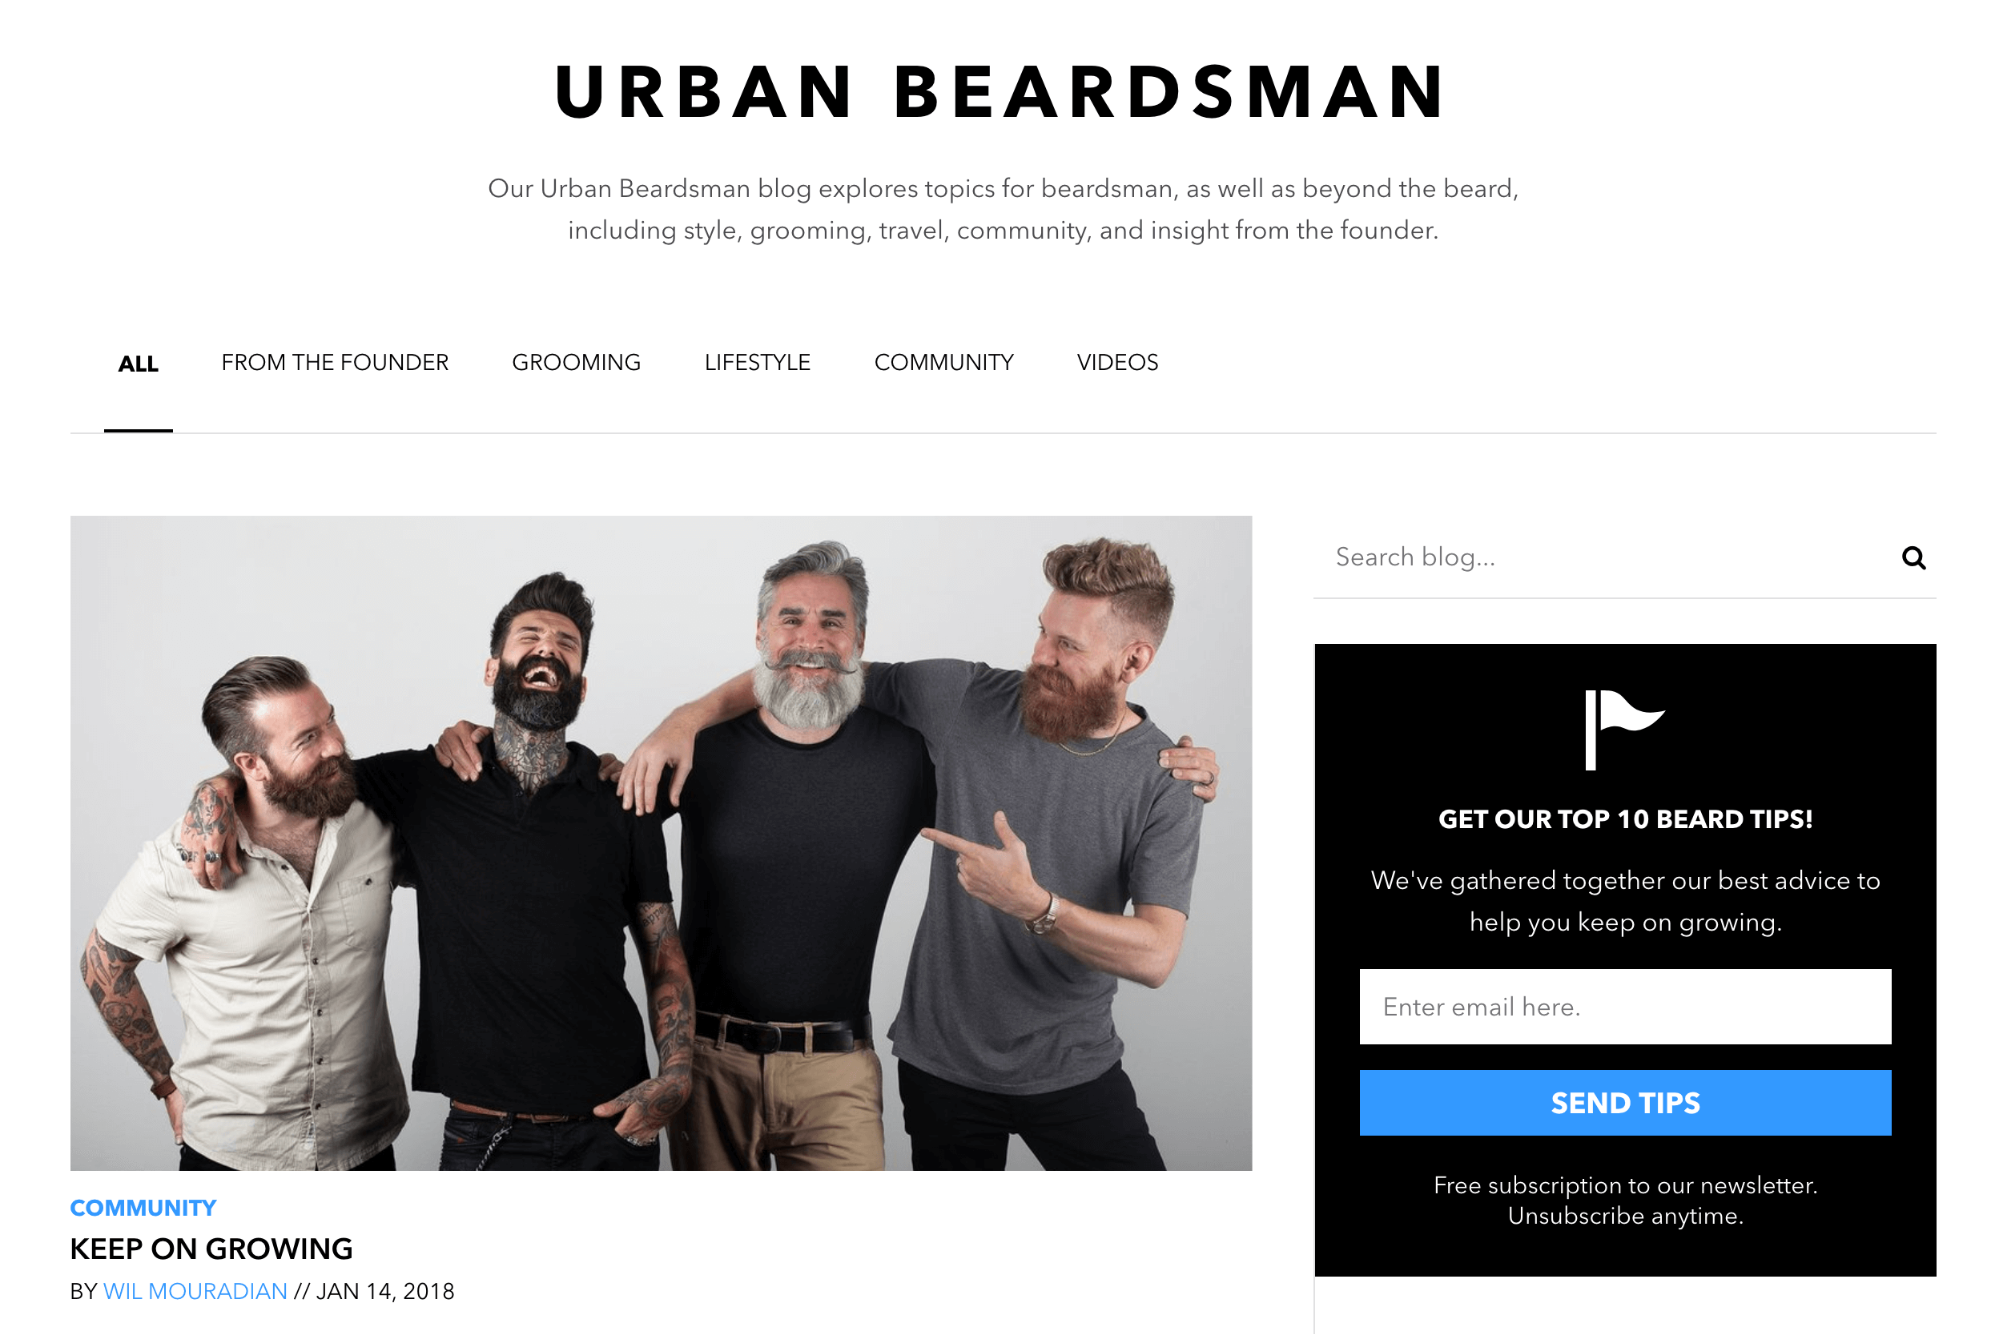 Screenshot showing a page on urban beardsman